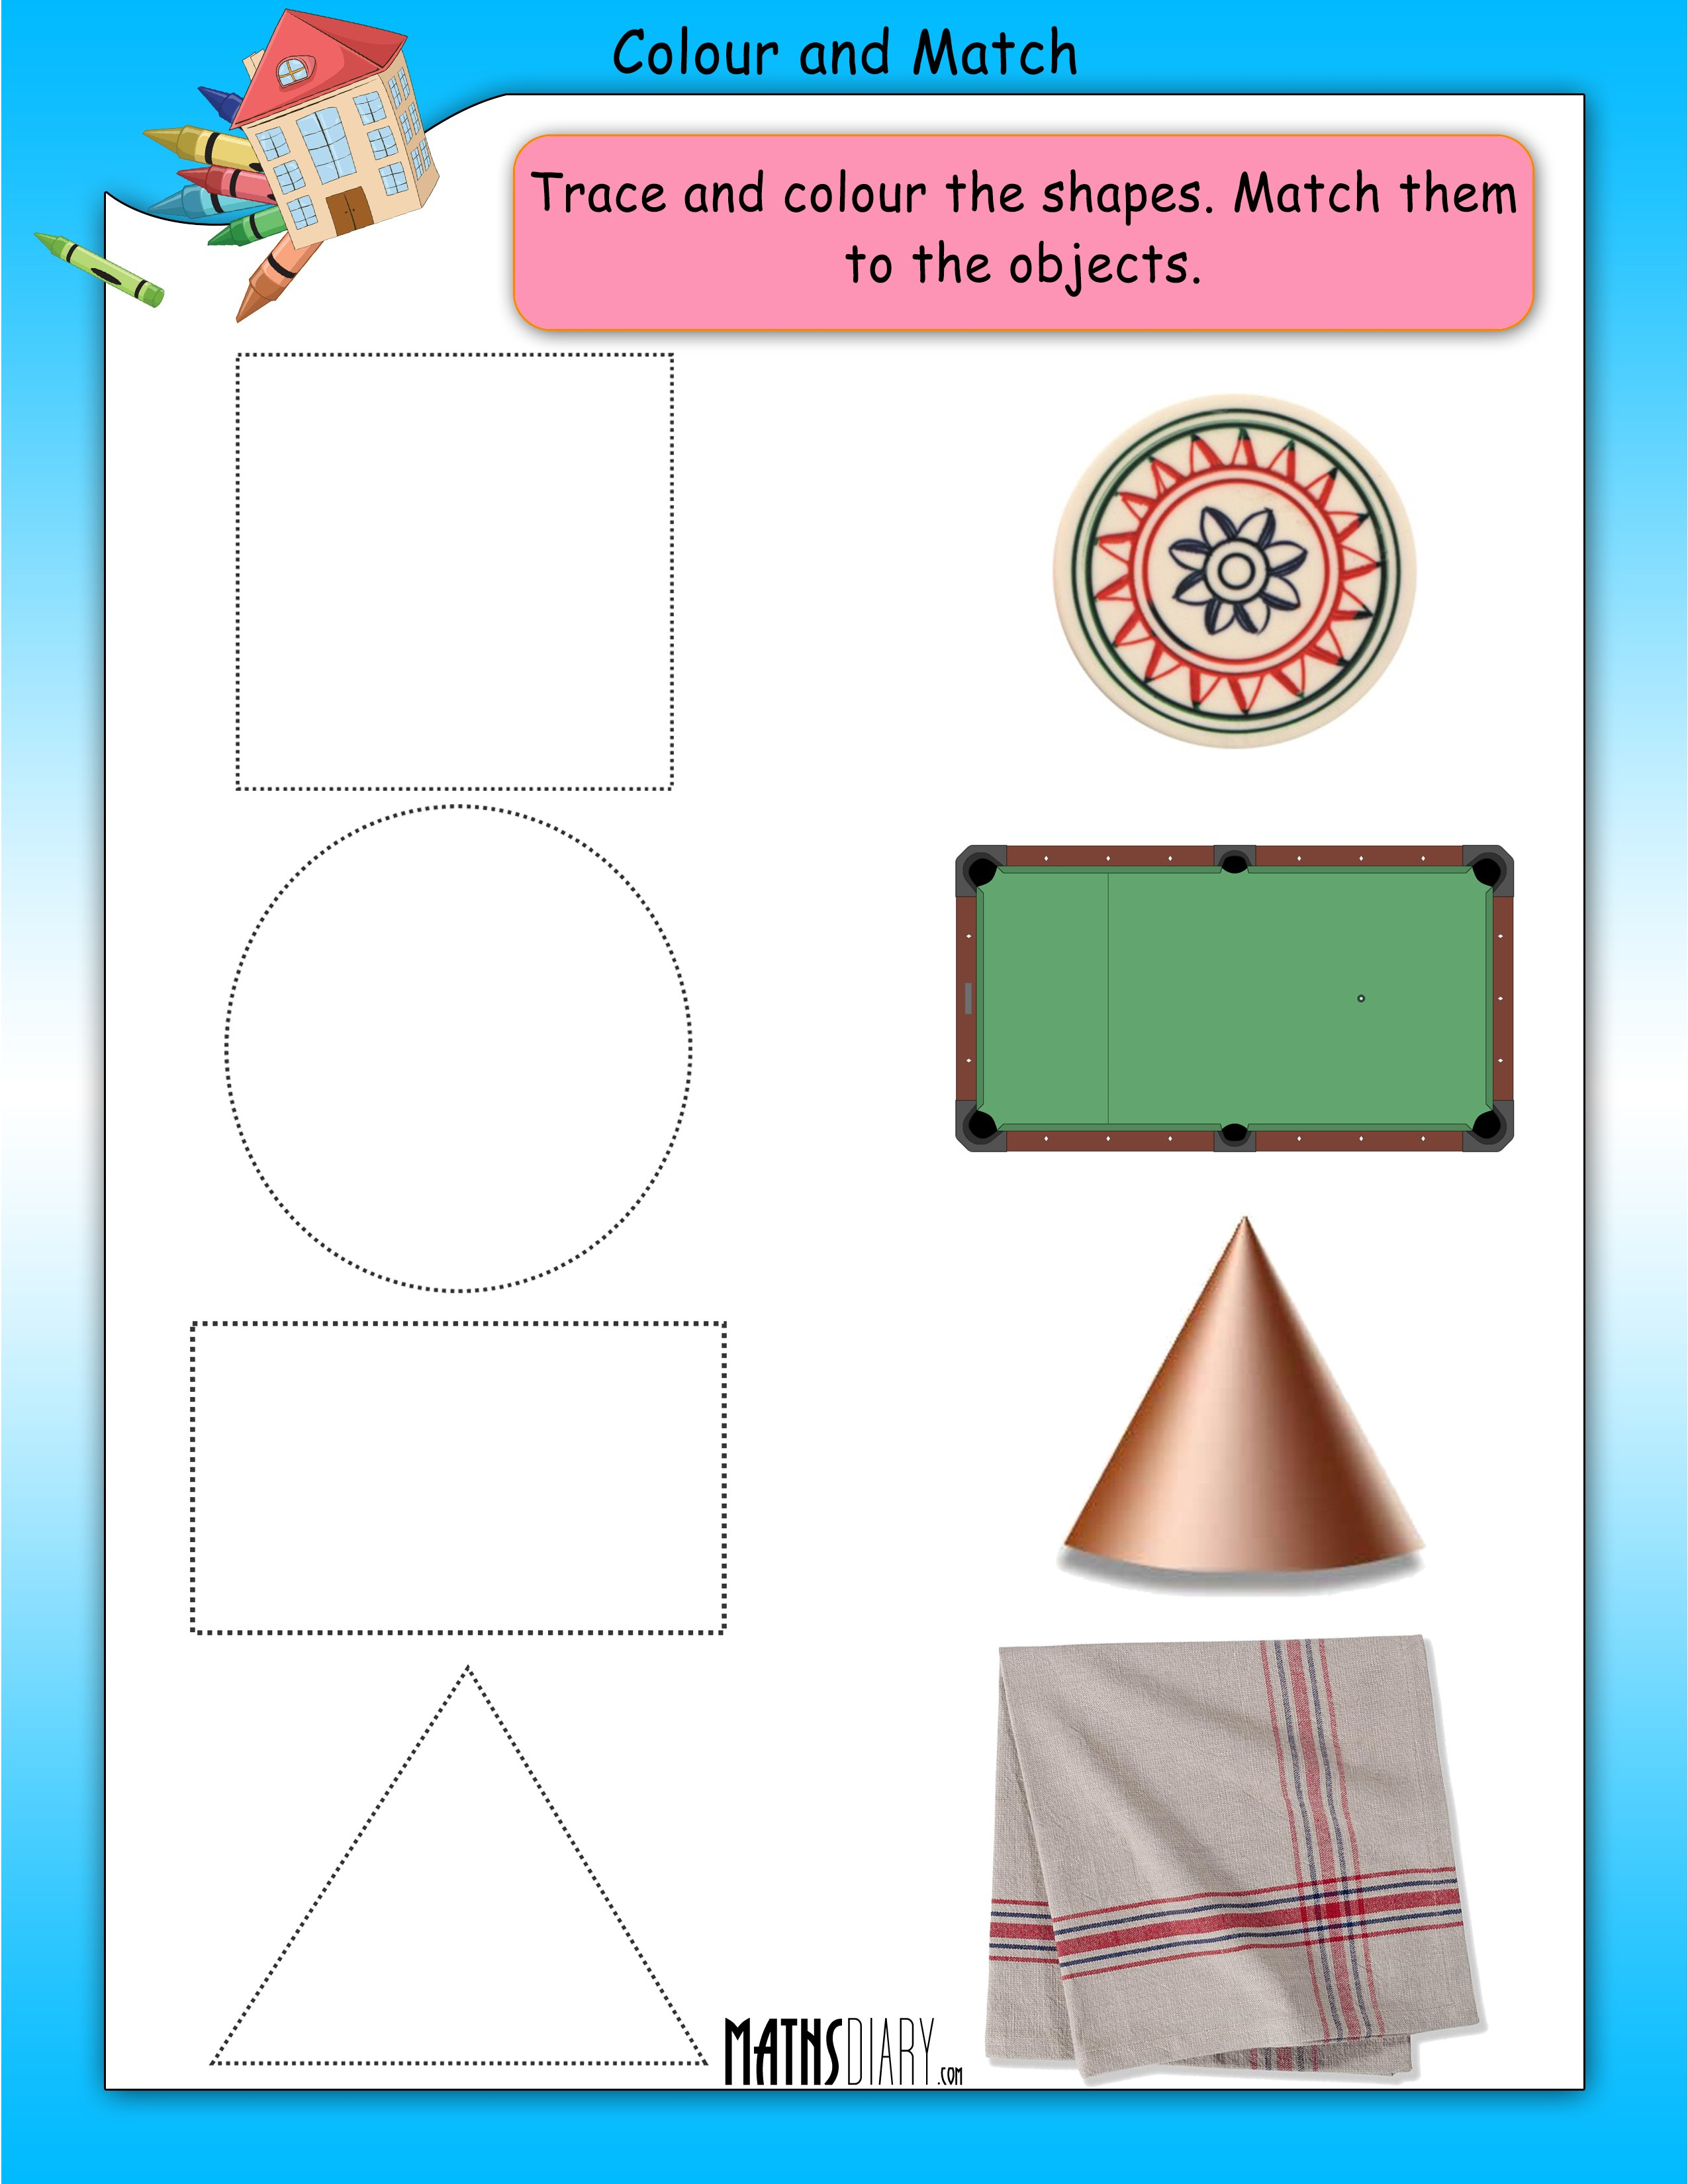 worksheet Matching Shapes To Objects Worksheets nursery math worksheets colour and match shapes worksheet 5